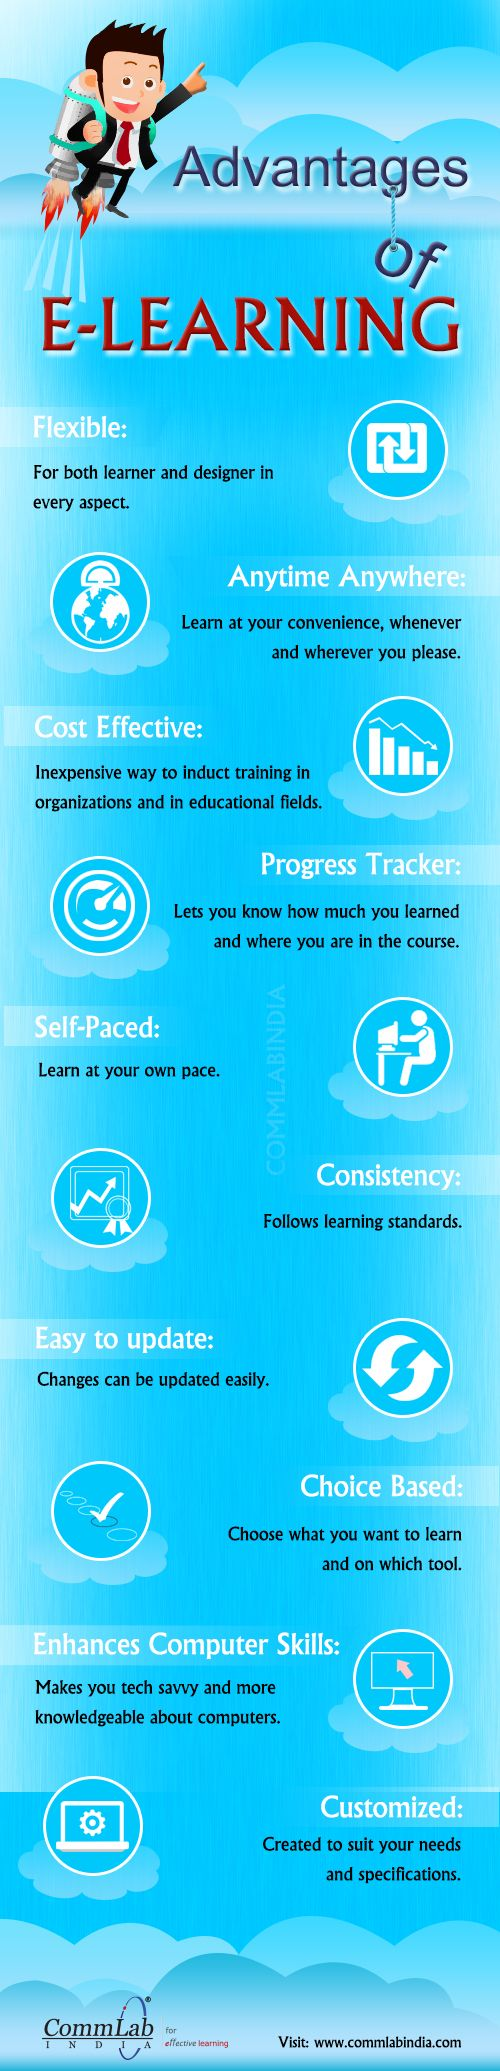 1000+ images about eLearning Infographics on Pinterest ...